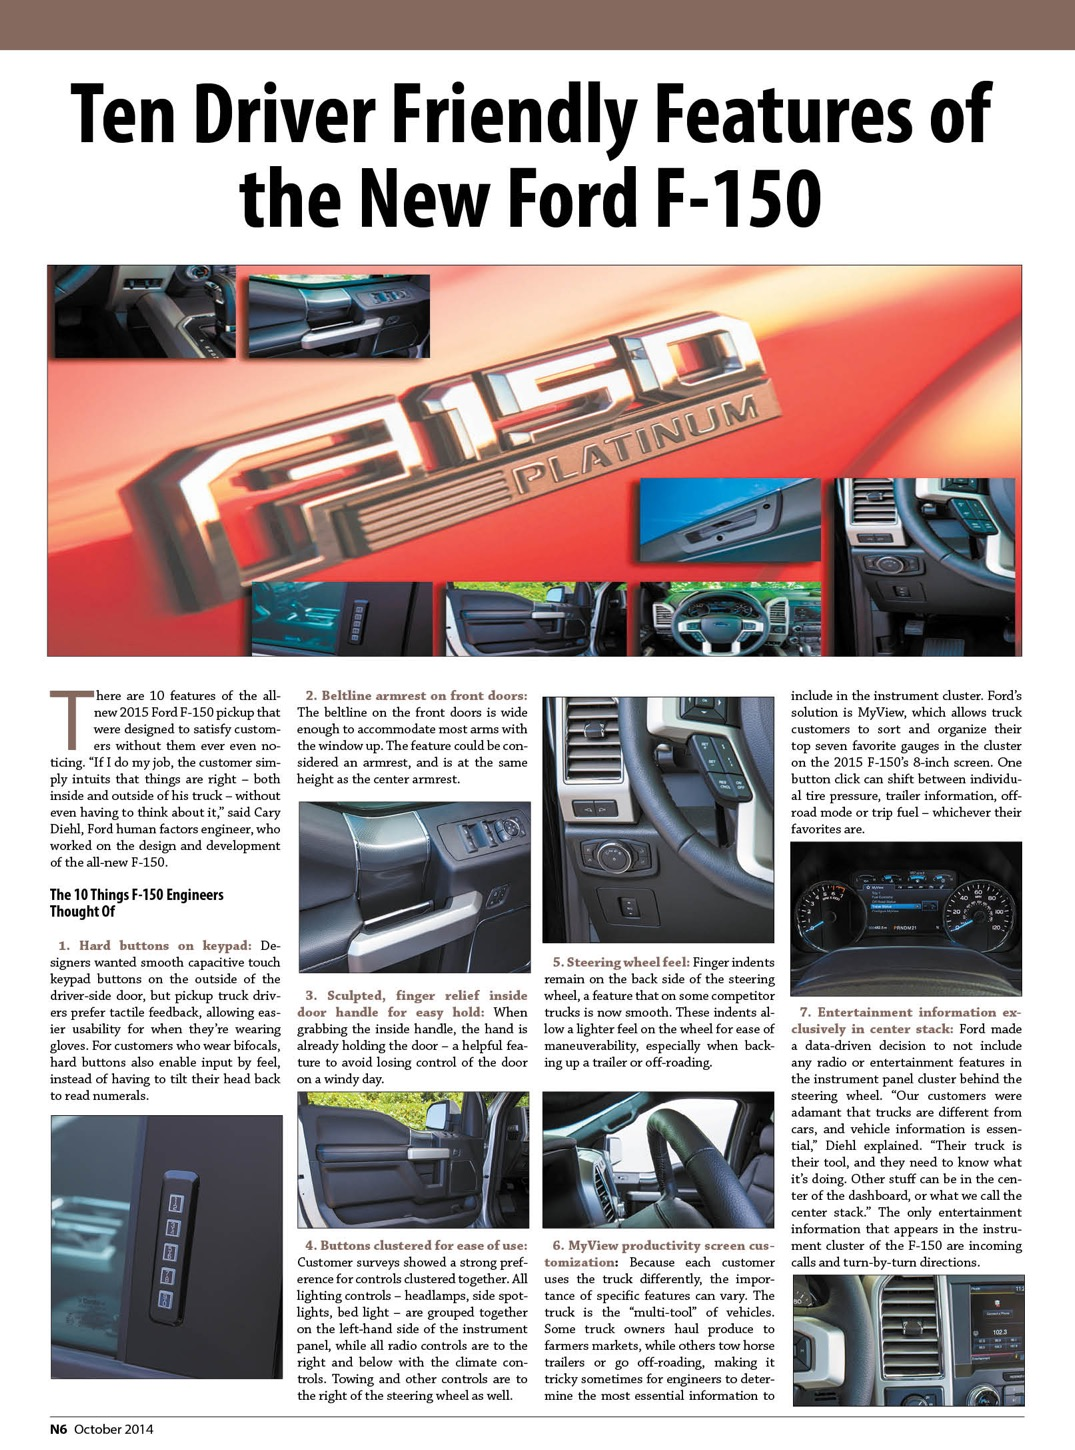 Ten Driver Friendly Features of the New Ford F-1501